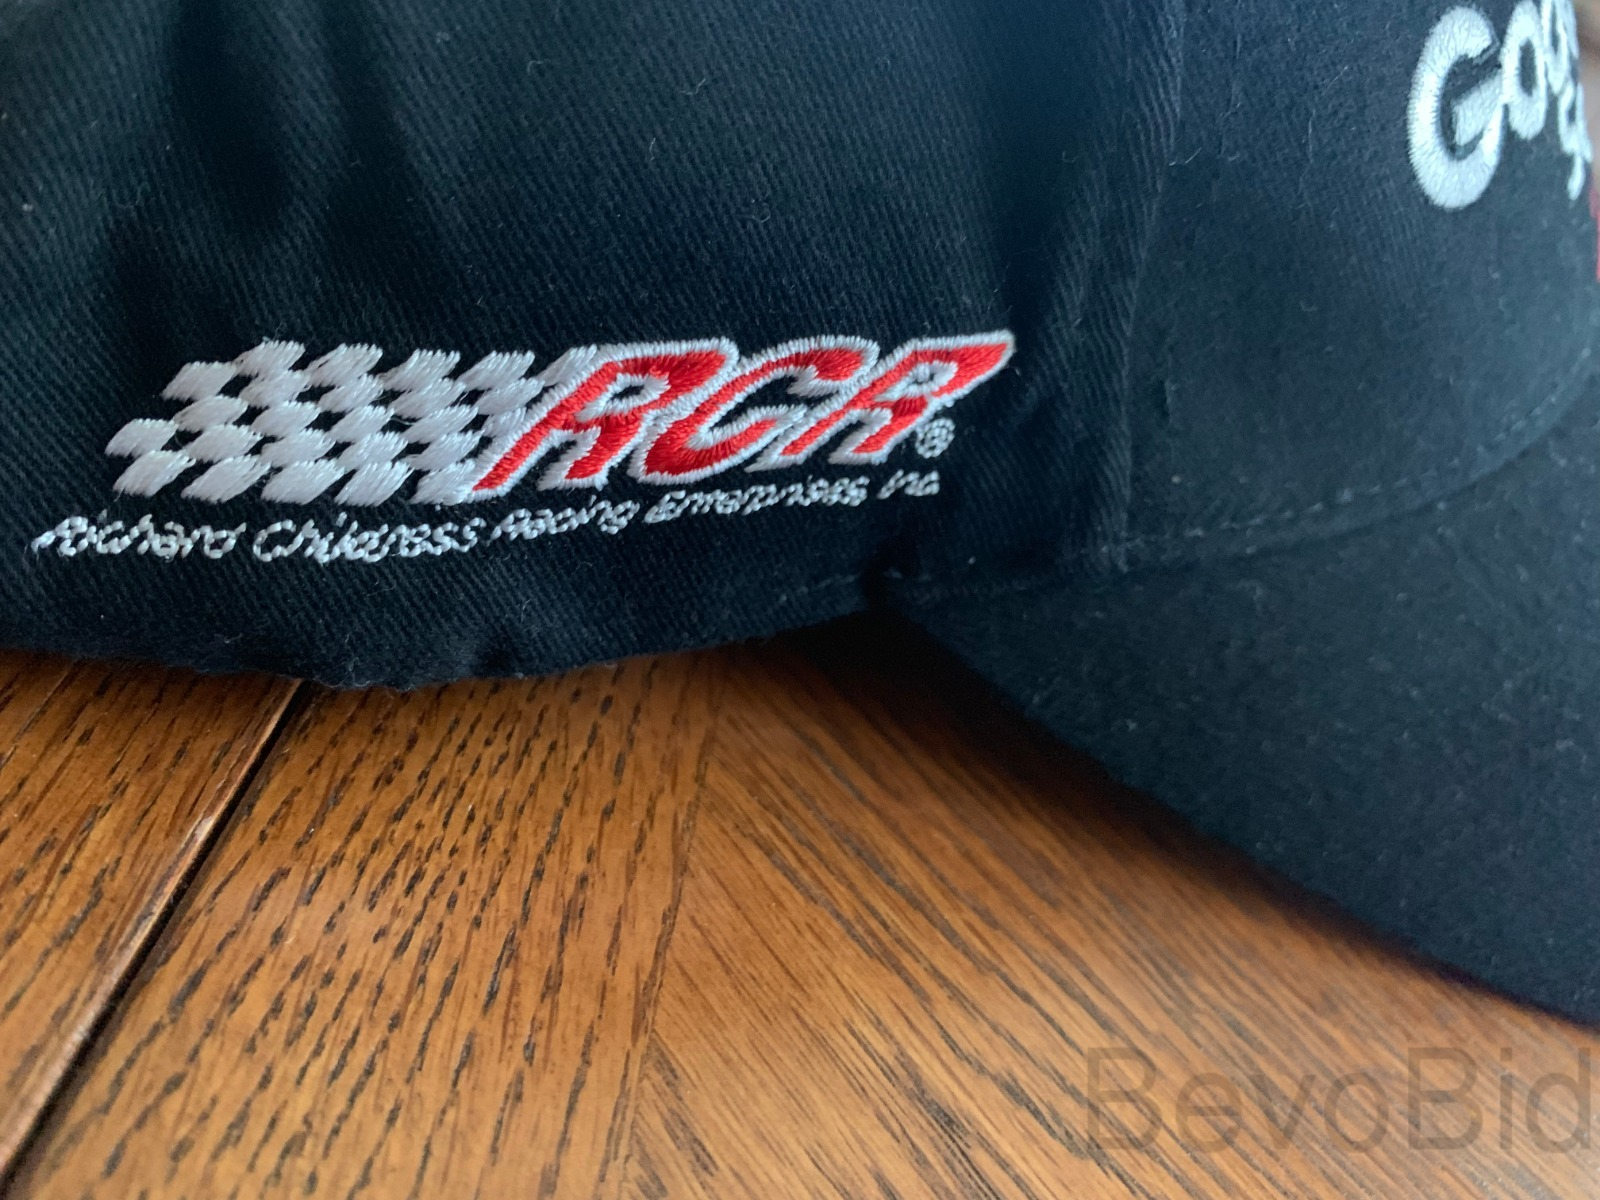 GM Good Wrench Service Plus Cap/Hat, Collectible -